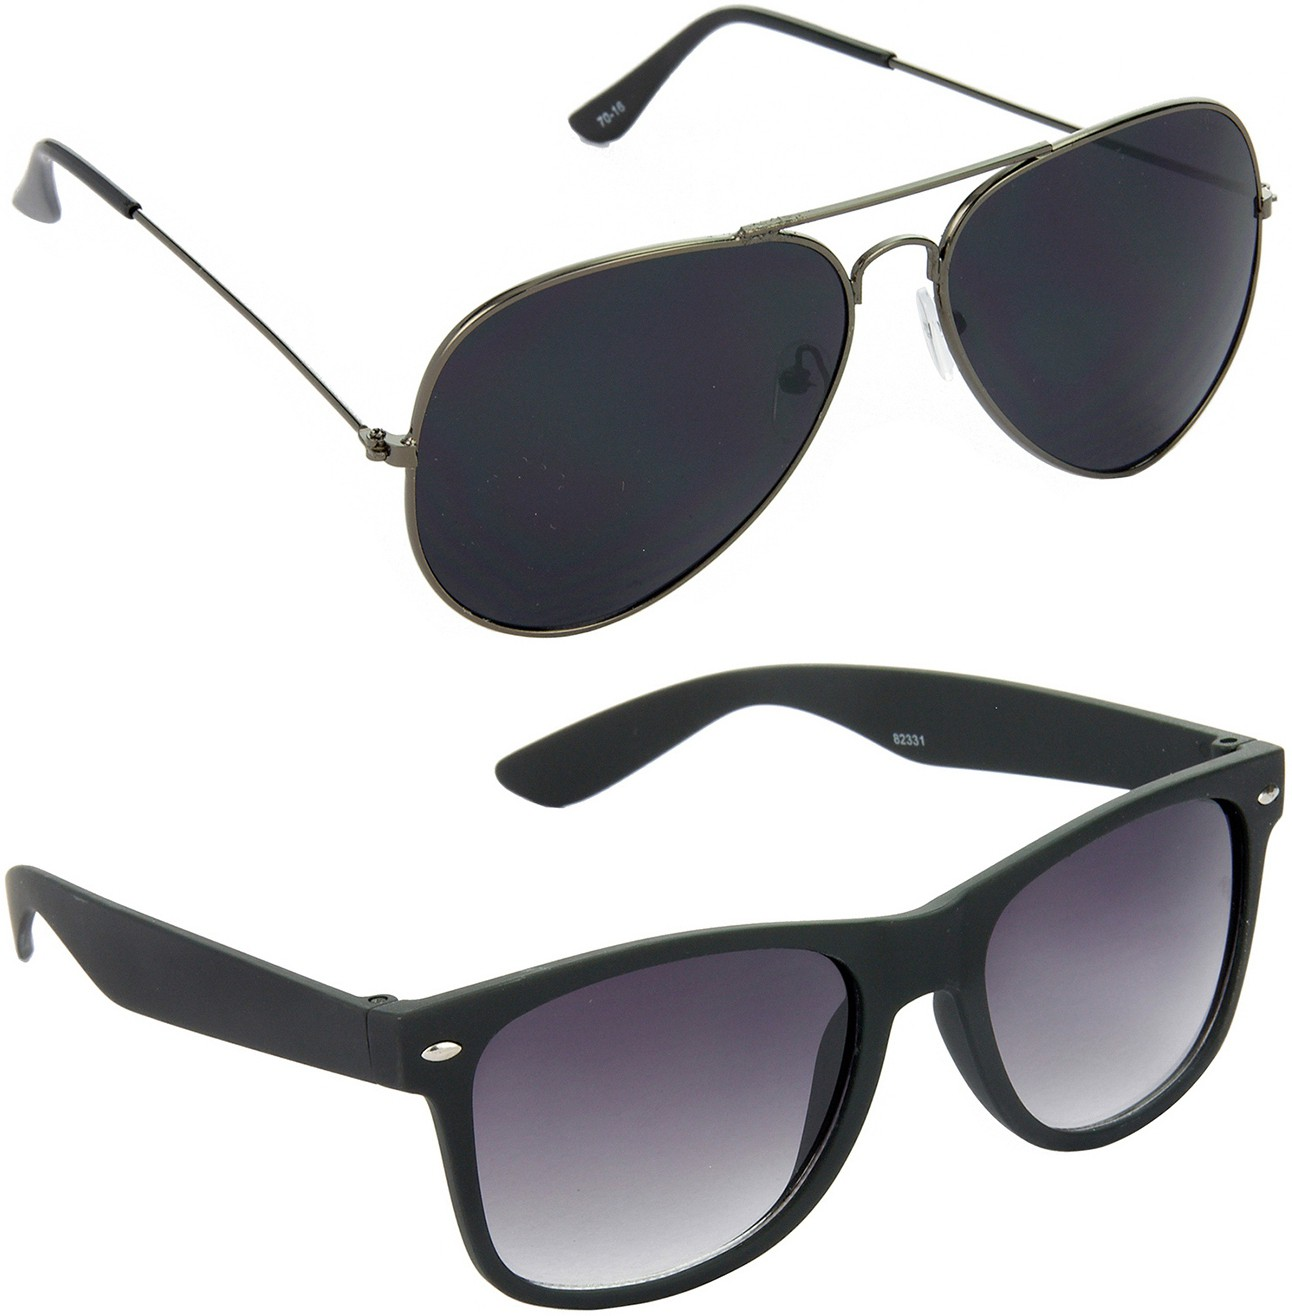 Deals - Delhi - Gansta & more <br> Wayfarers Sunglasses<br> Category - sunglasses<br> Business - Flipkart.com